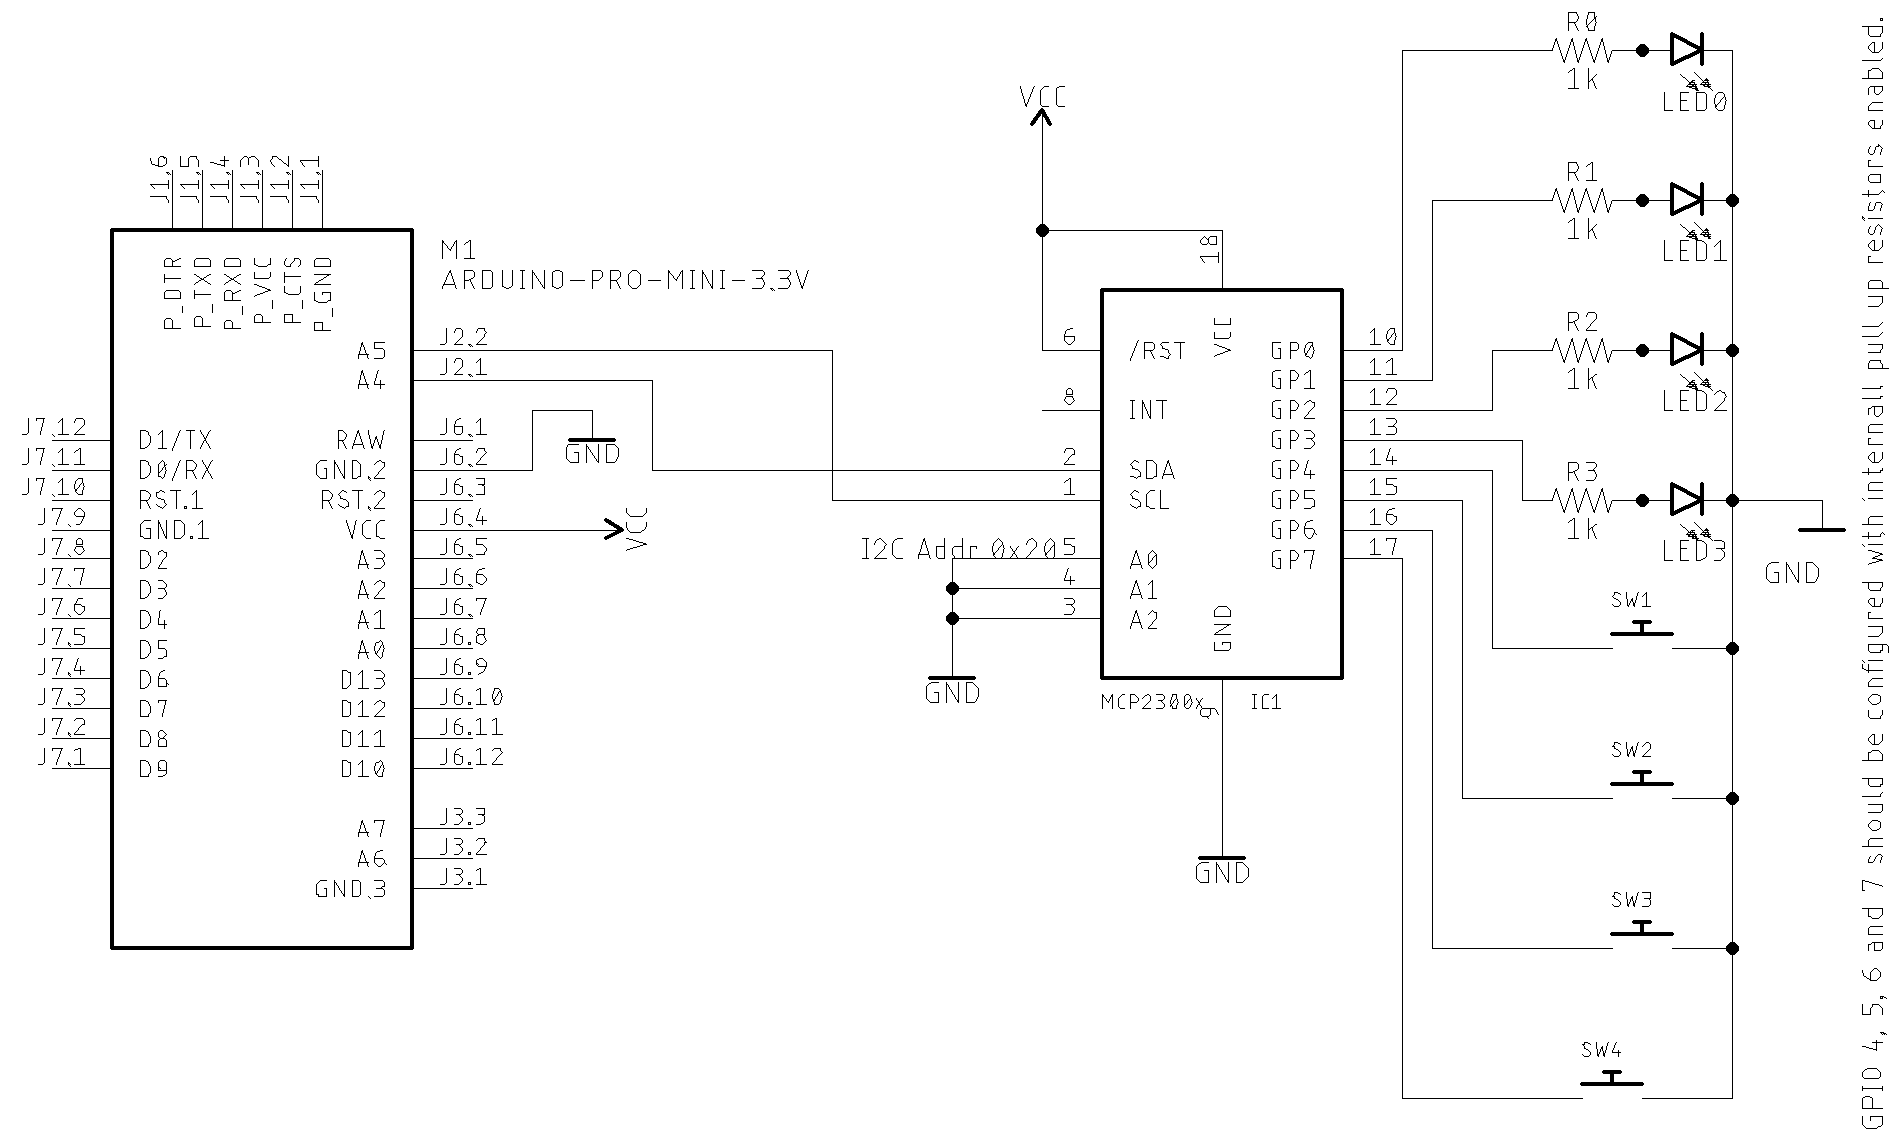 Basic Schematic with LEDs